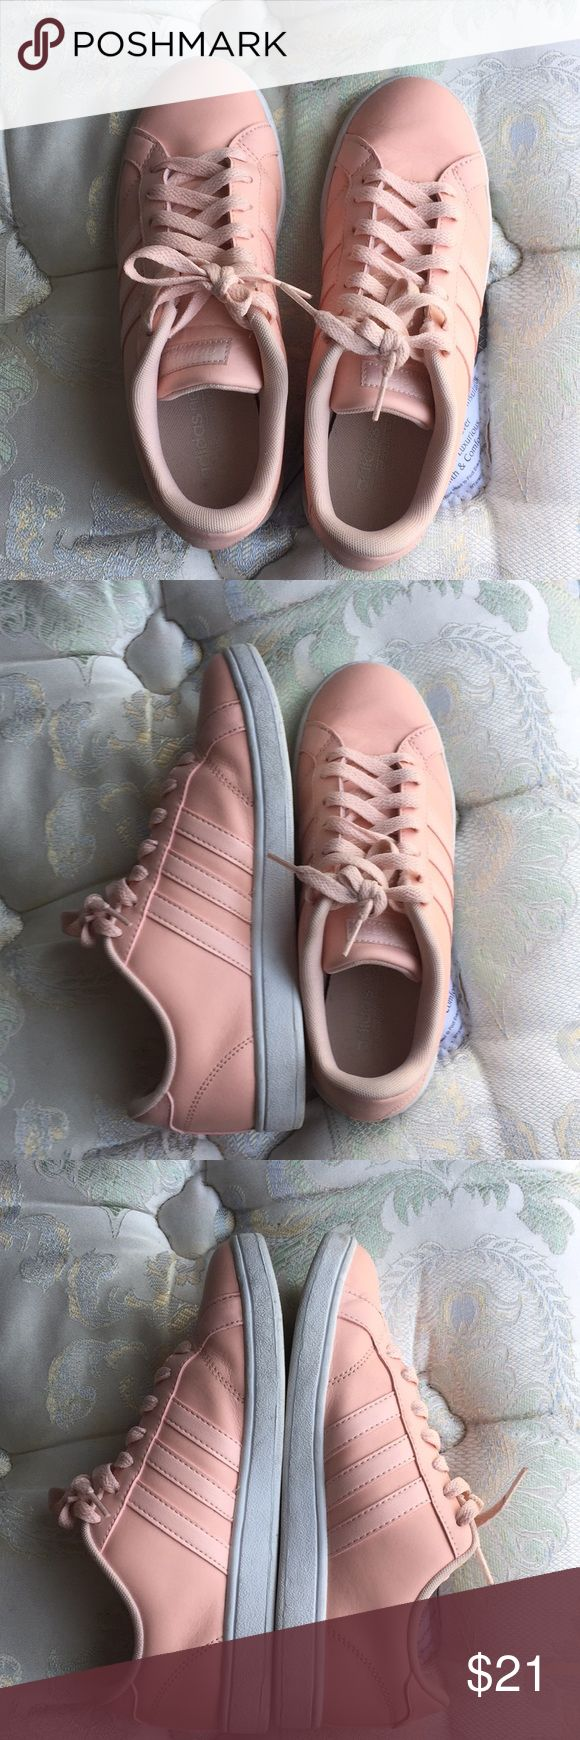 Peach Adidasneo Cloudfoam Shoe Lightly scuffed light peach adidas tennis shoes. Creasing on the right shoe. Dirty sides, but those can be cleaned up nicely. adidas Shoes Athletic Shoes